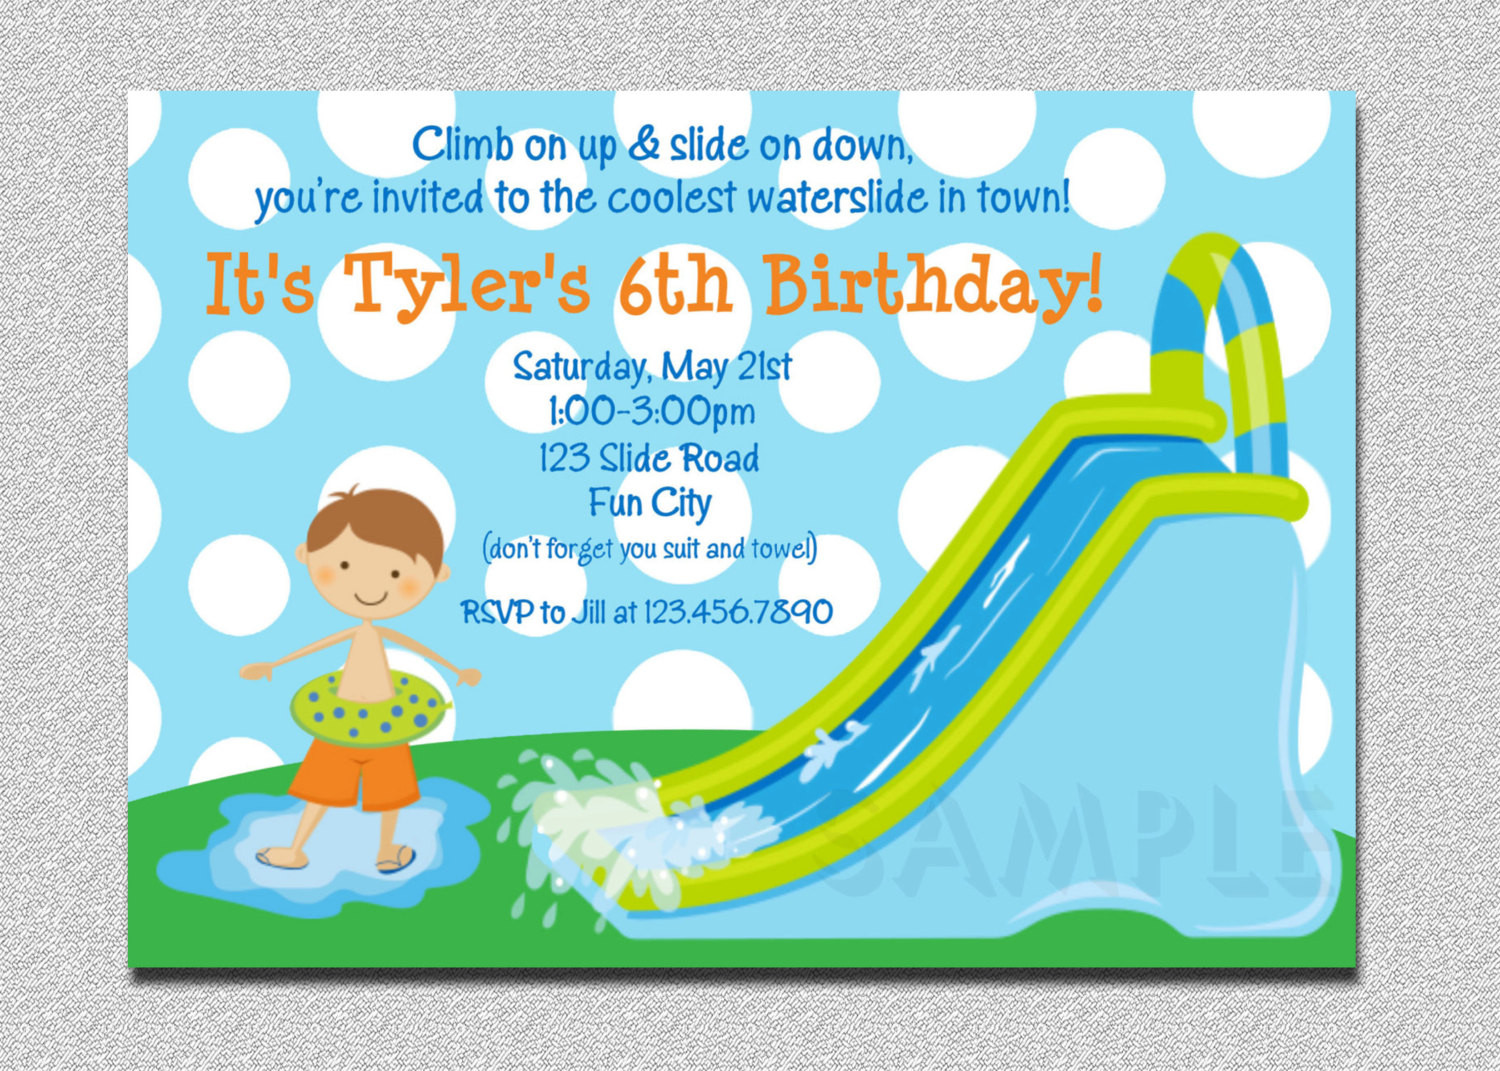 Best ideas about Water Slide Birthday Invitations . Save or Pin Waterslide Birthday Invitations Water Slide Birthday Party Now.